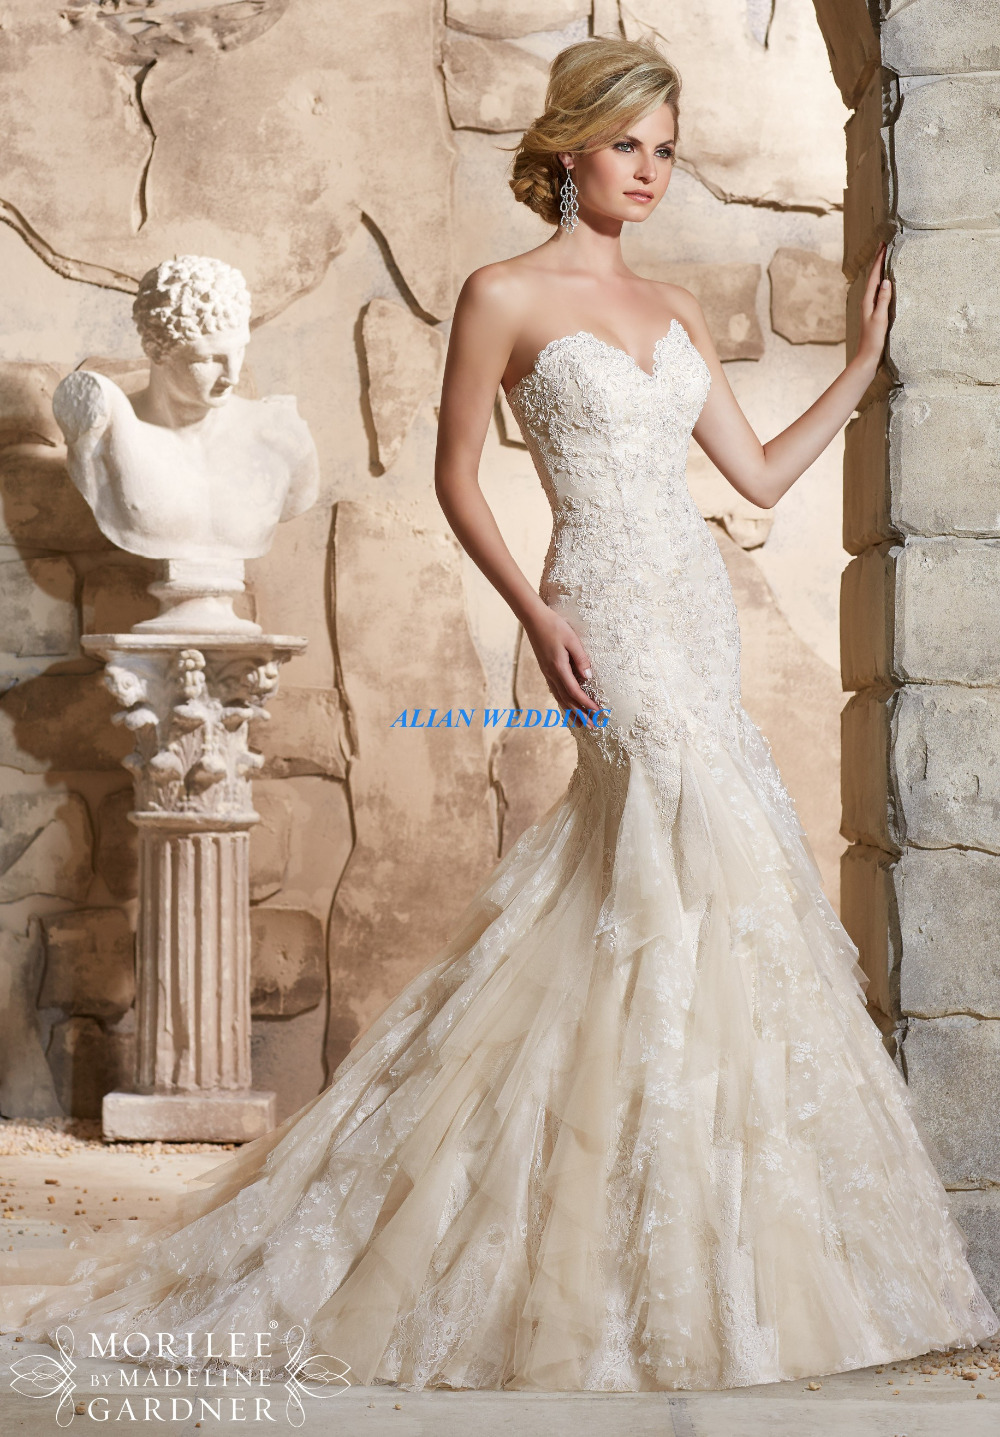 Vogue Wedding Dresses Flowy Vintage Vestidos De Novia Liques Fashion Bridal Gowns Lace Organza Ruffles Free Shipping Nw3509 In From